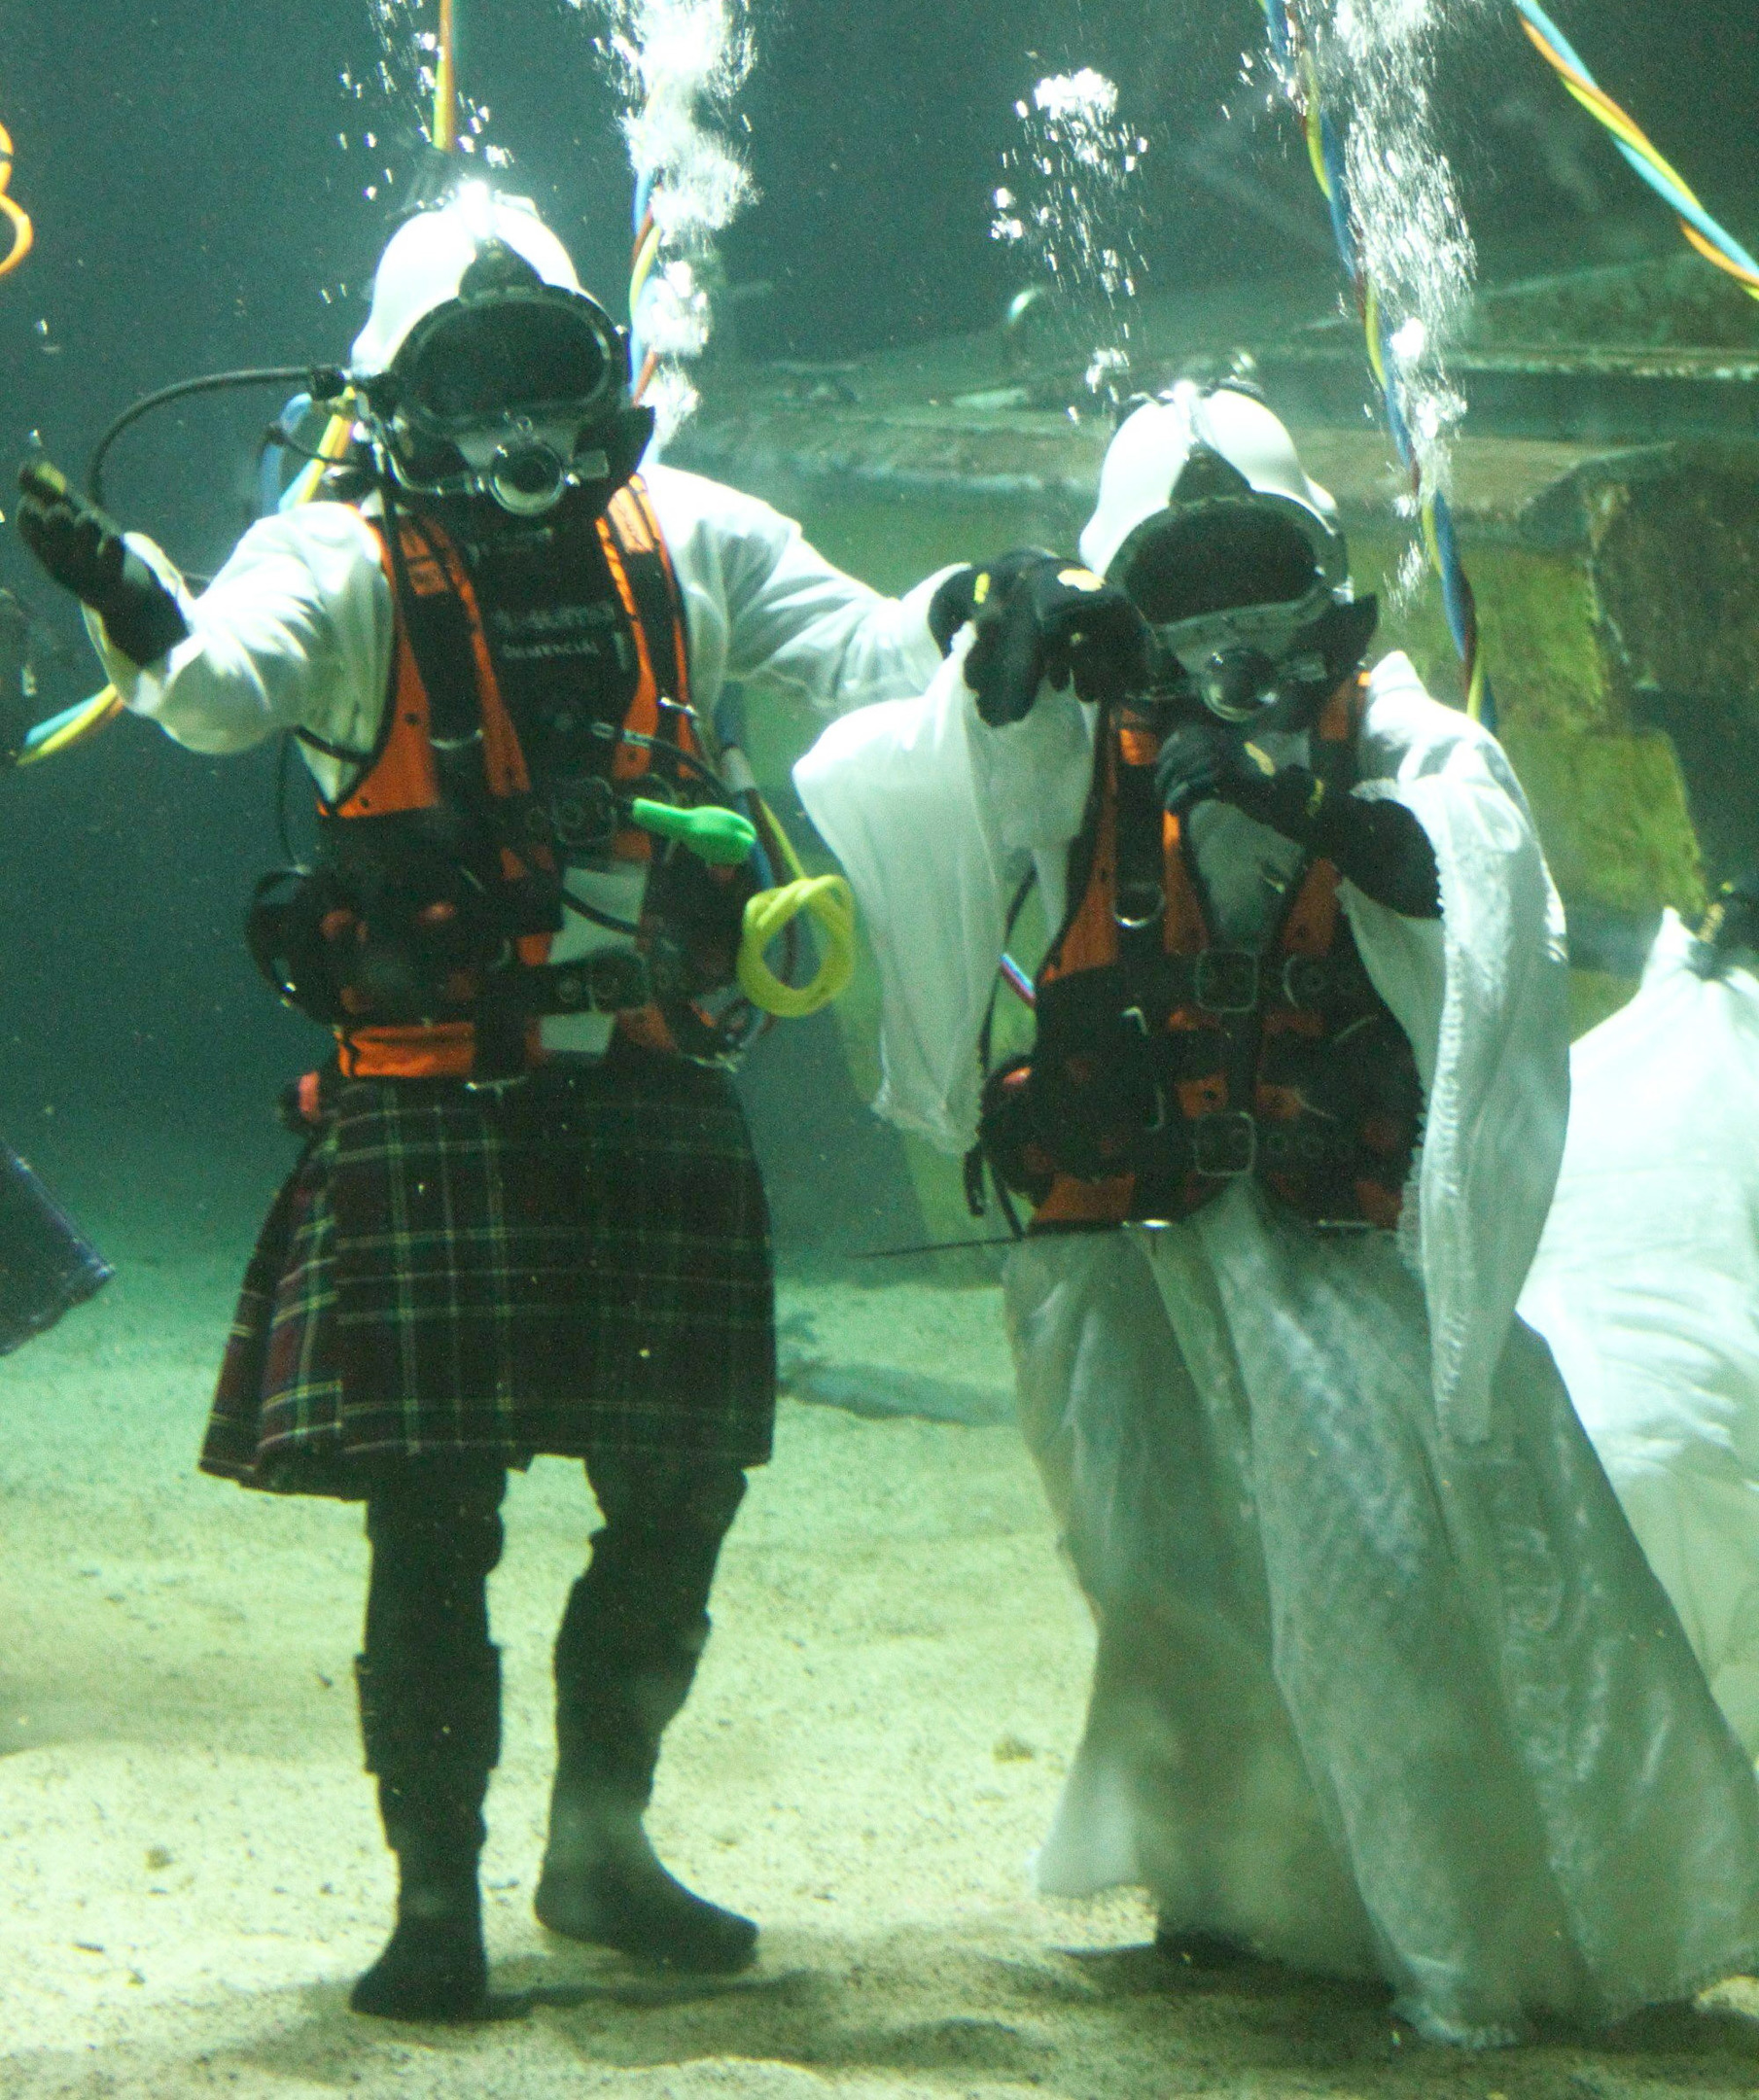 James Abbot and Dorota Bankowska married at the Underwater Centre in Fort William